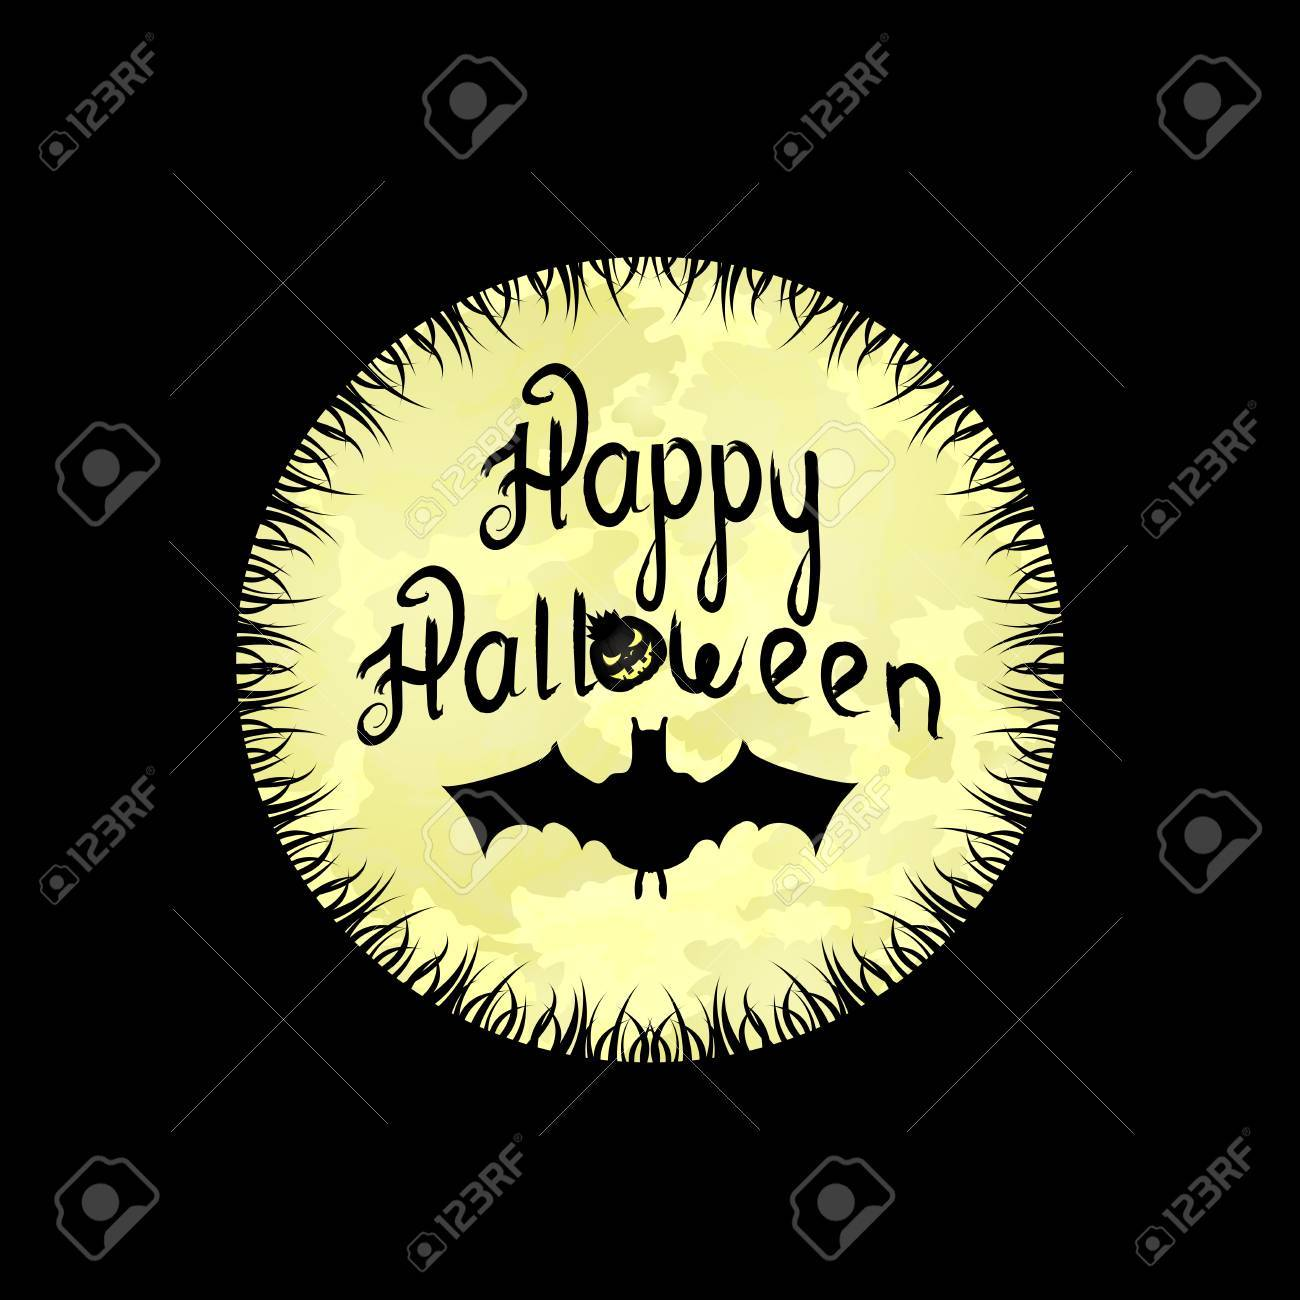 Halloween Background With Moon, Wishes And Bat On A Black Background Stock  Vector   65038200